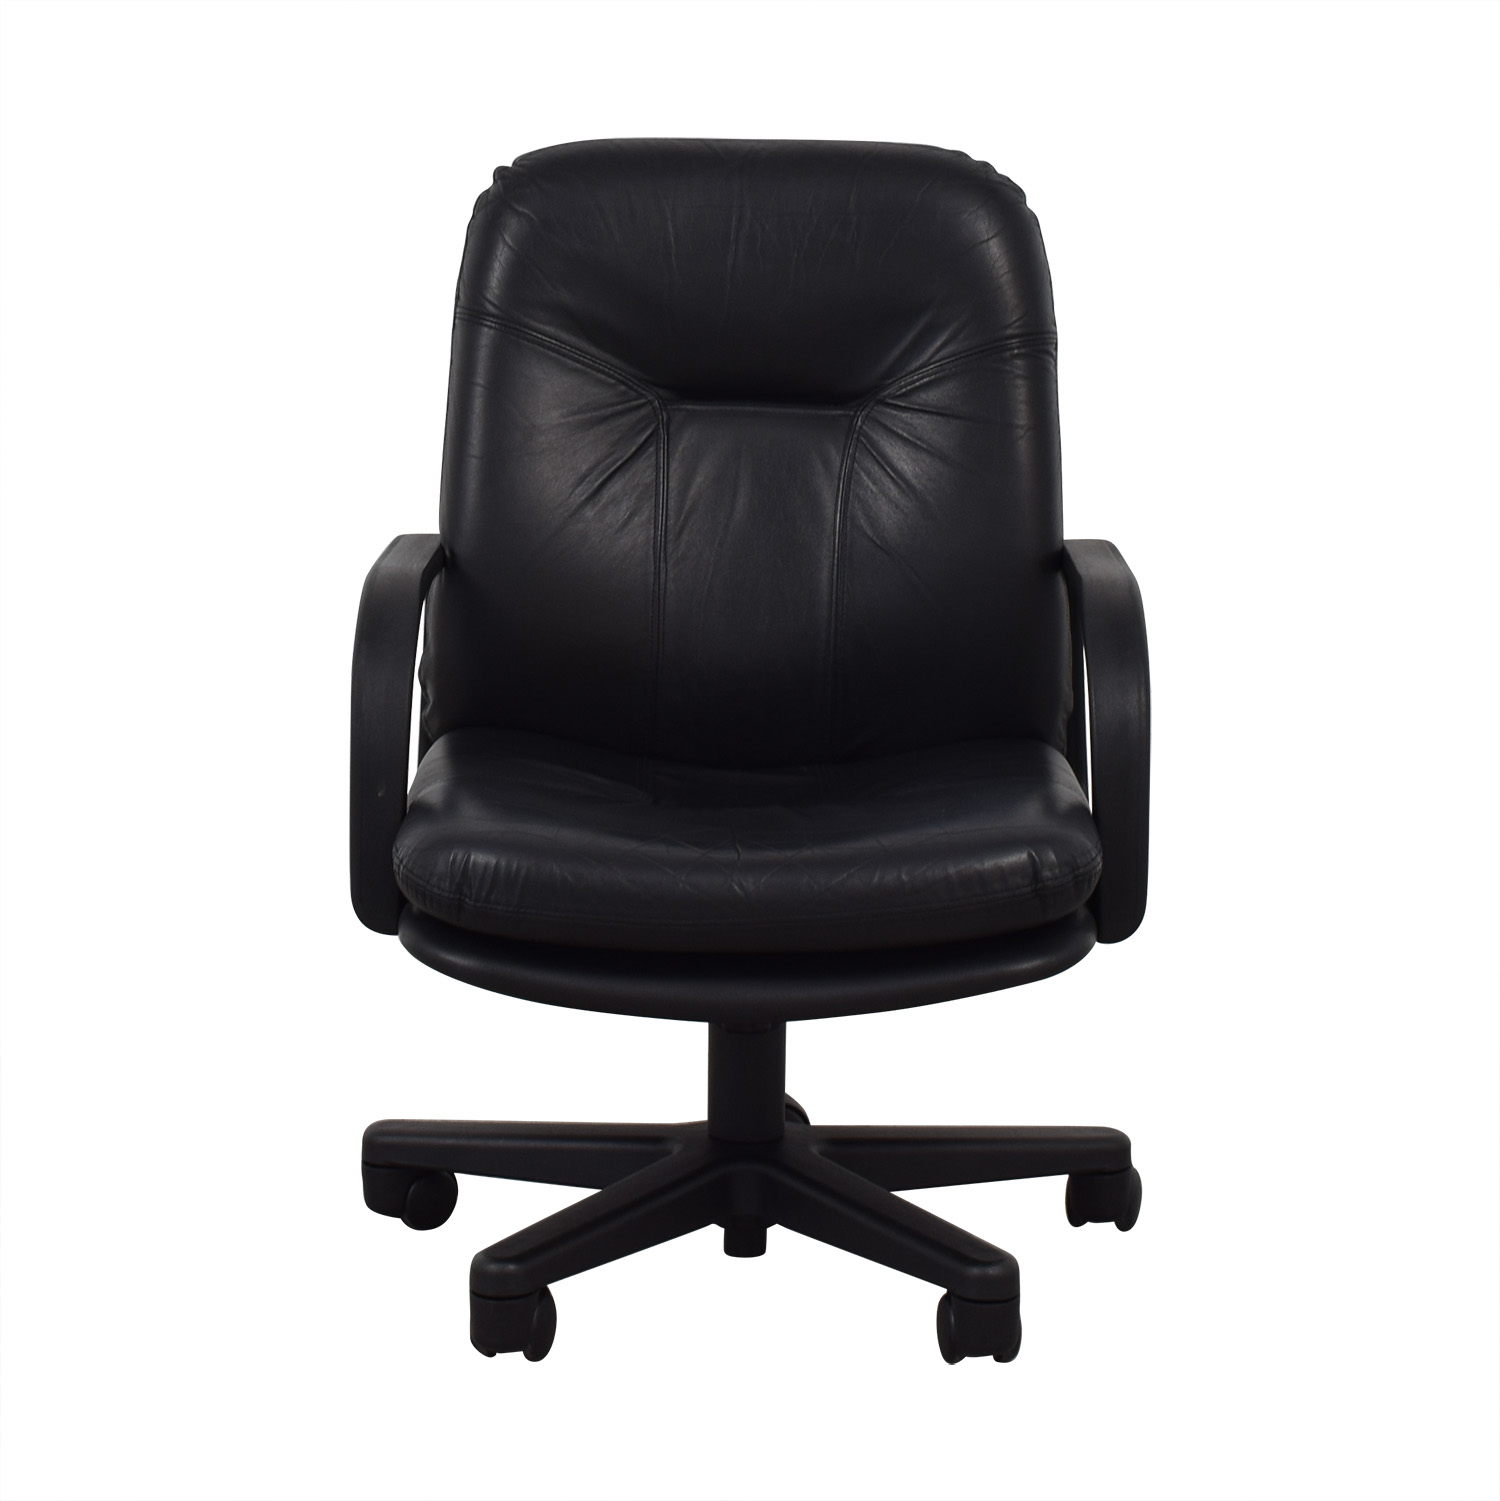 Black Office Chair sale